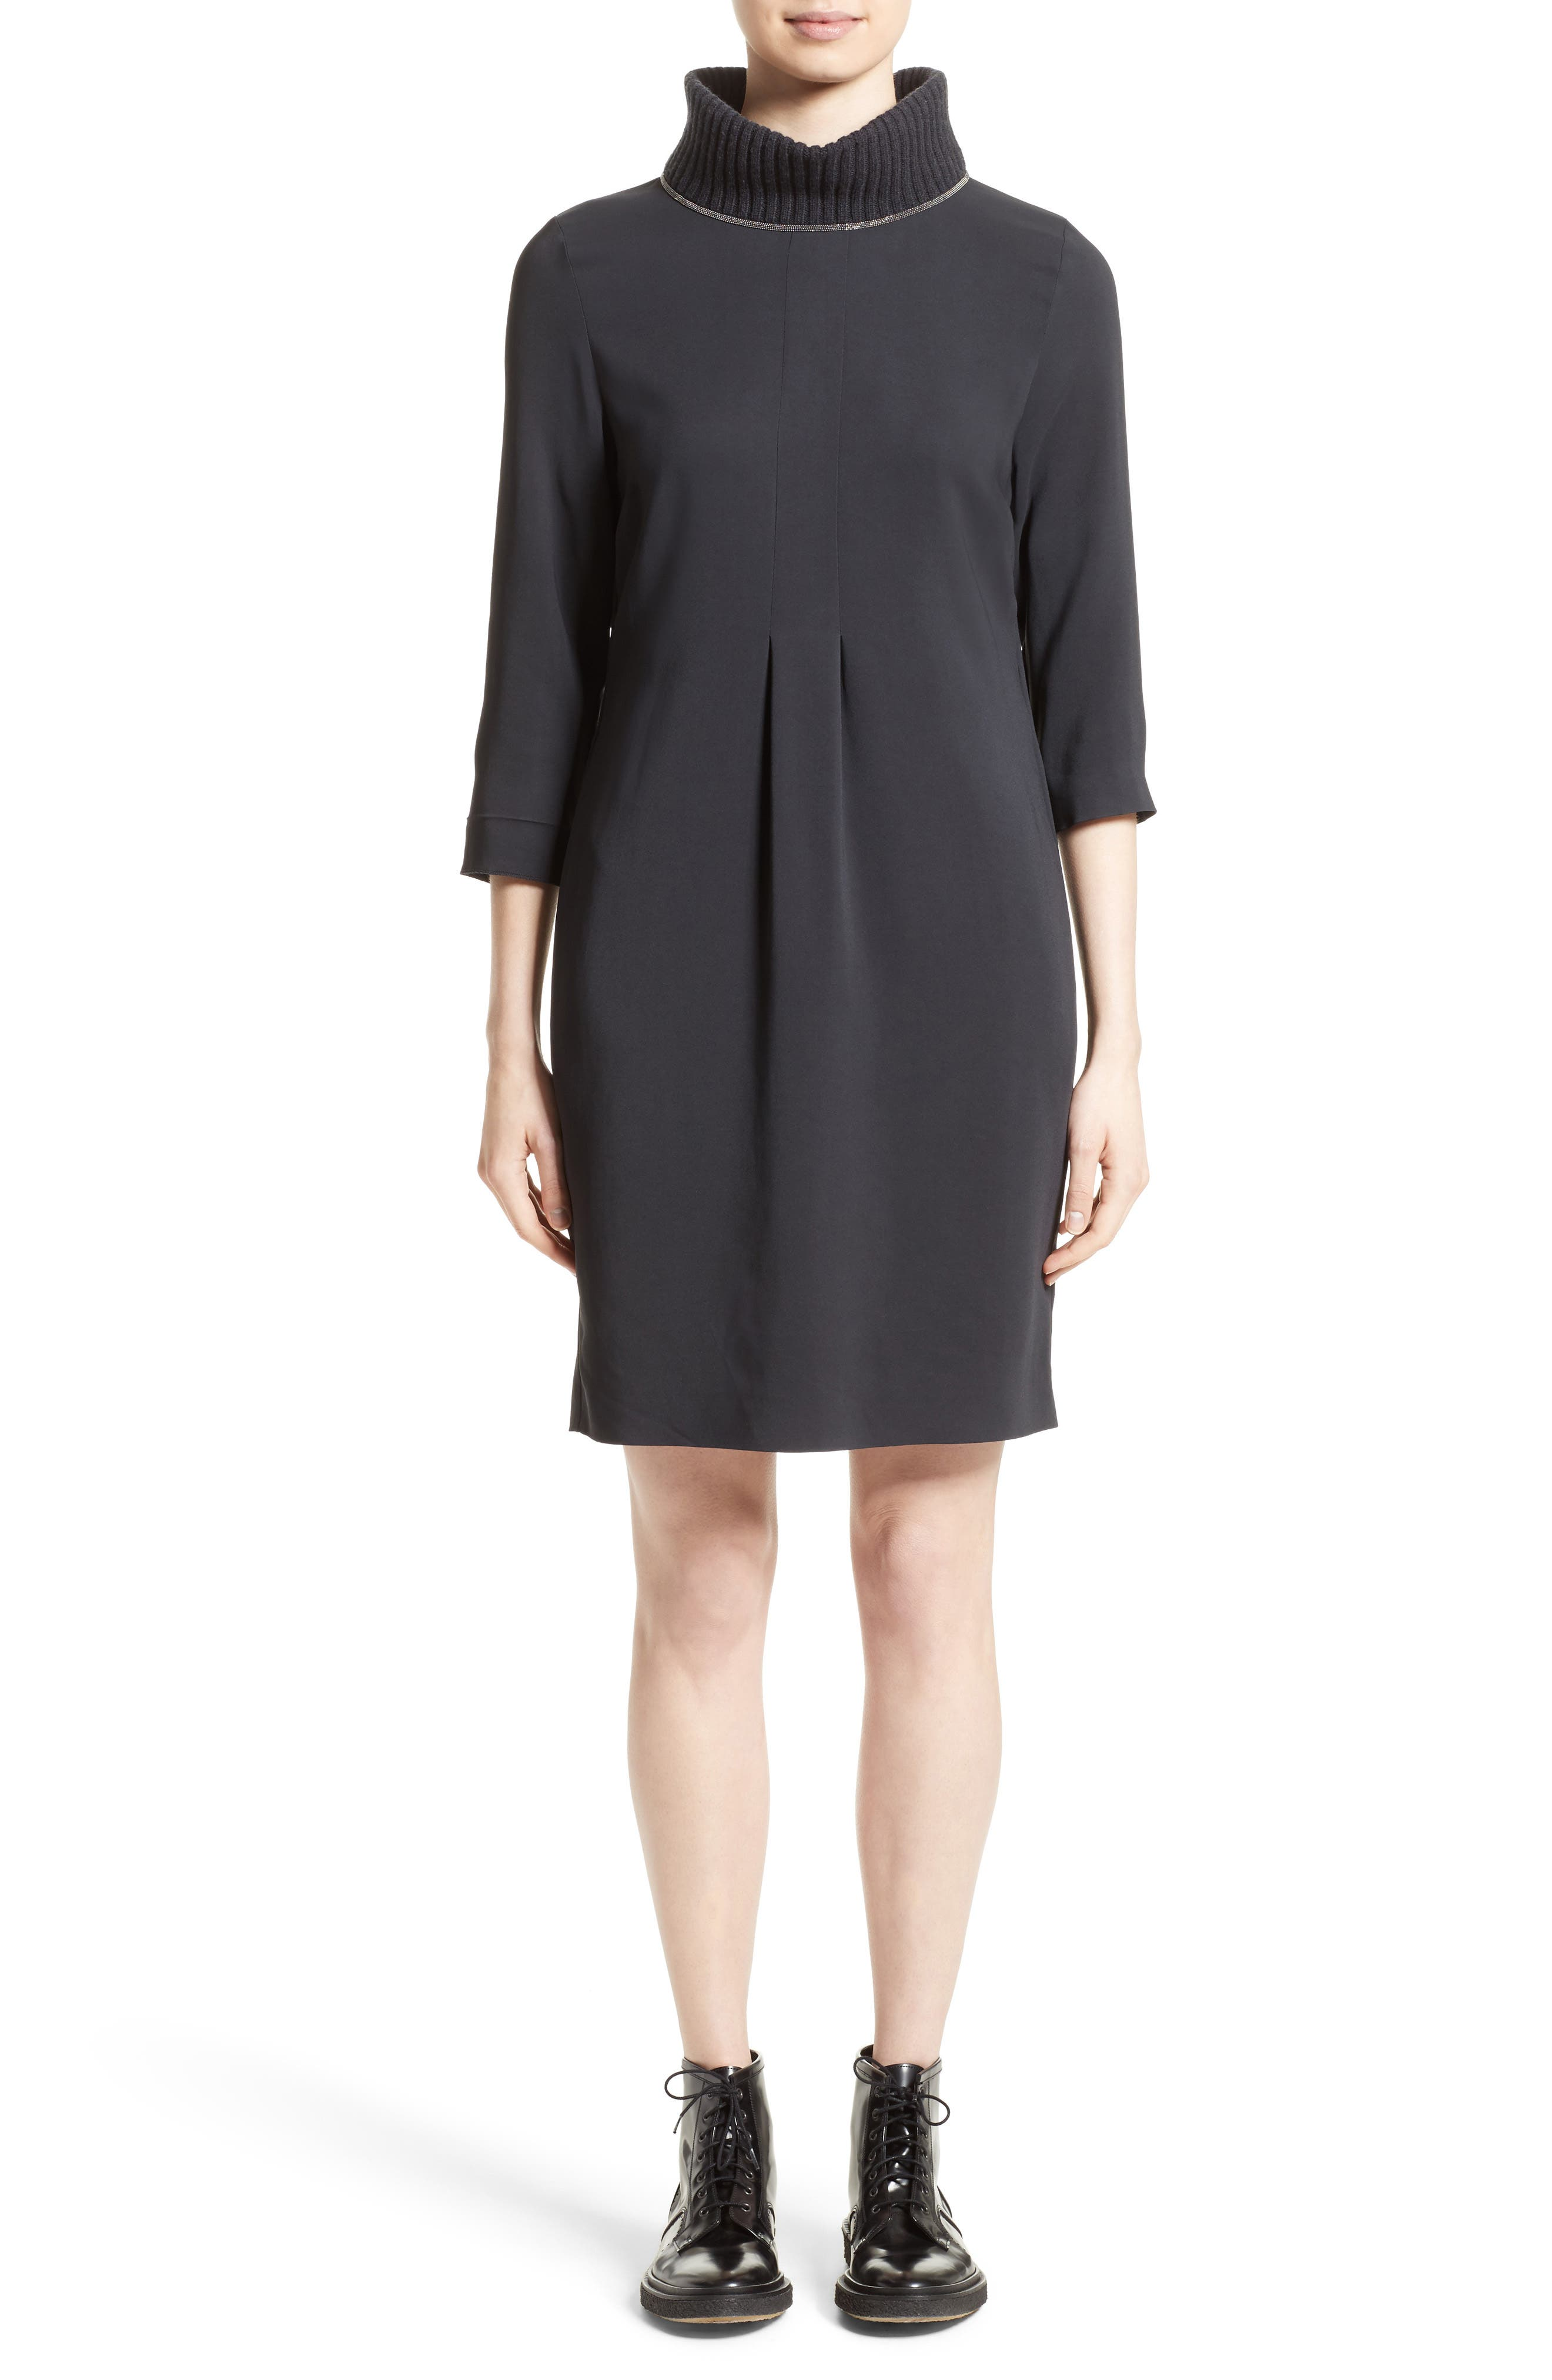 Fabiana Filippi Knit & Cady Dress